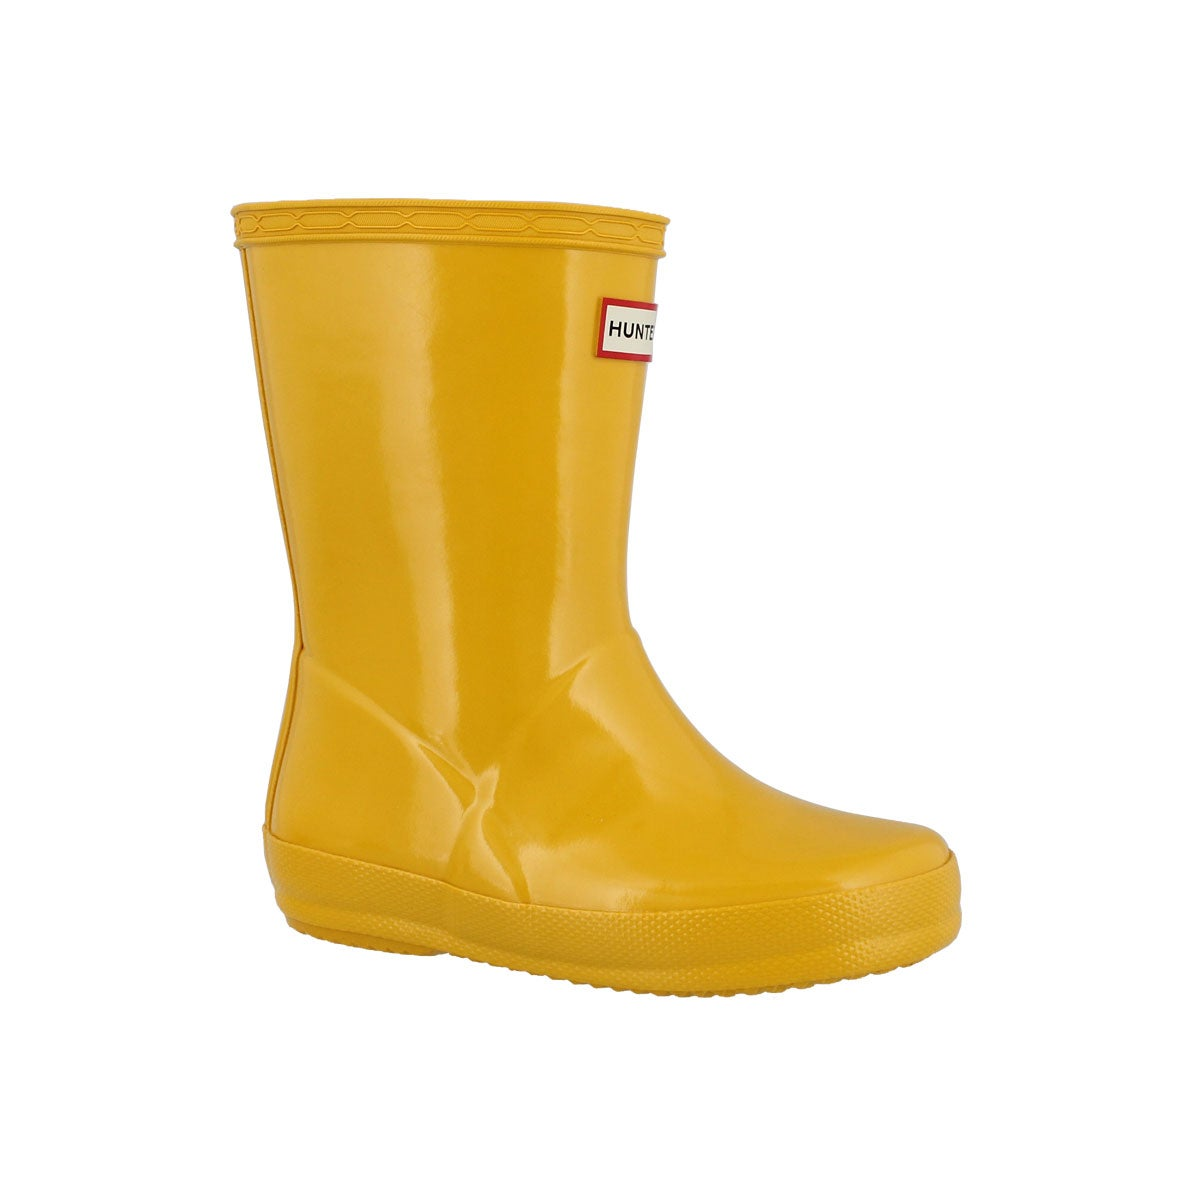 Infants' FIRST CLASSIC GLOSS yellow rain boots